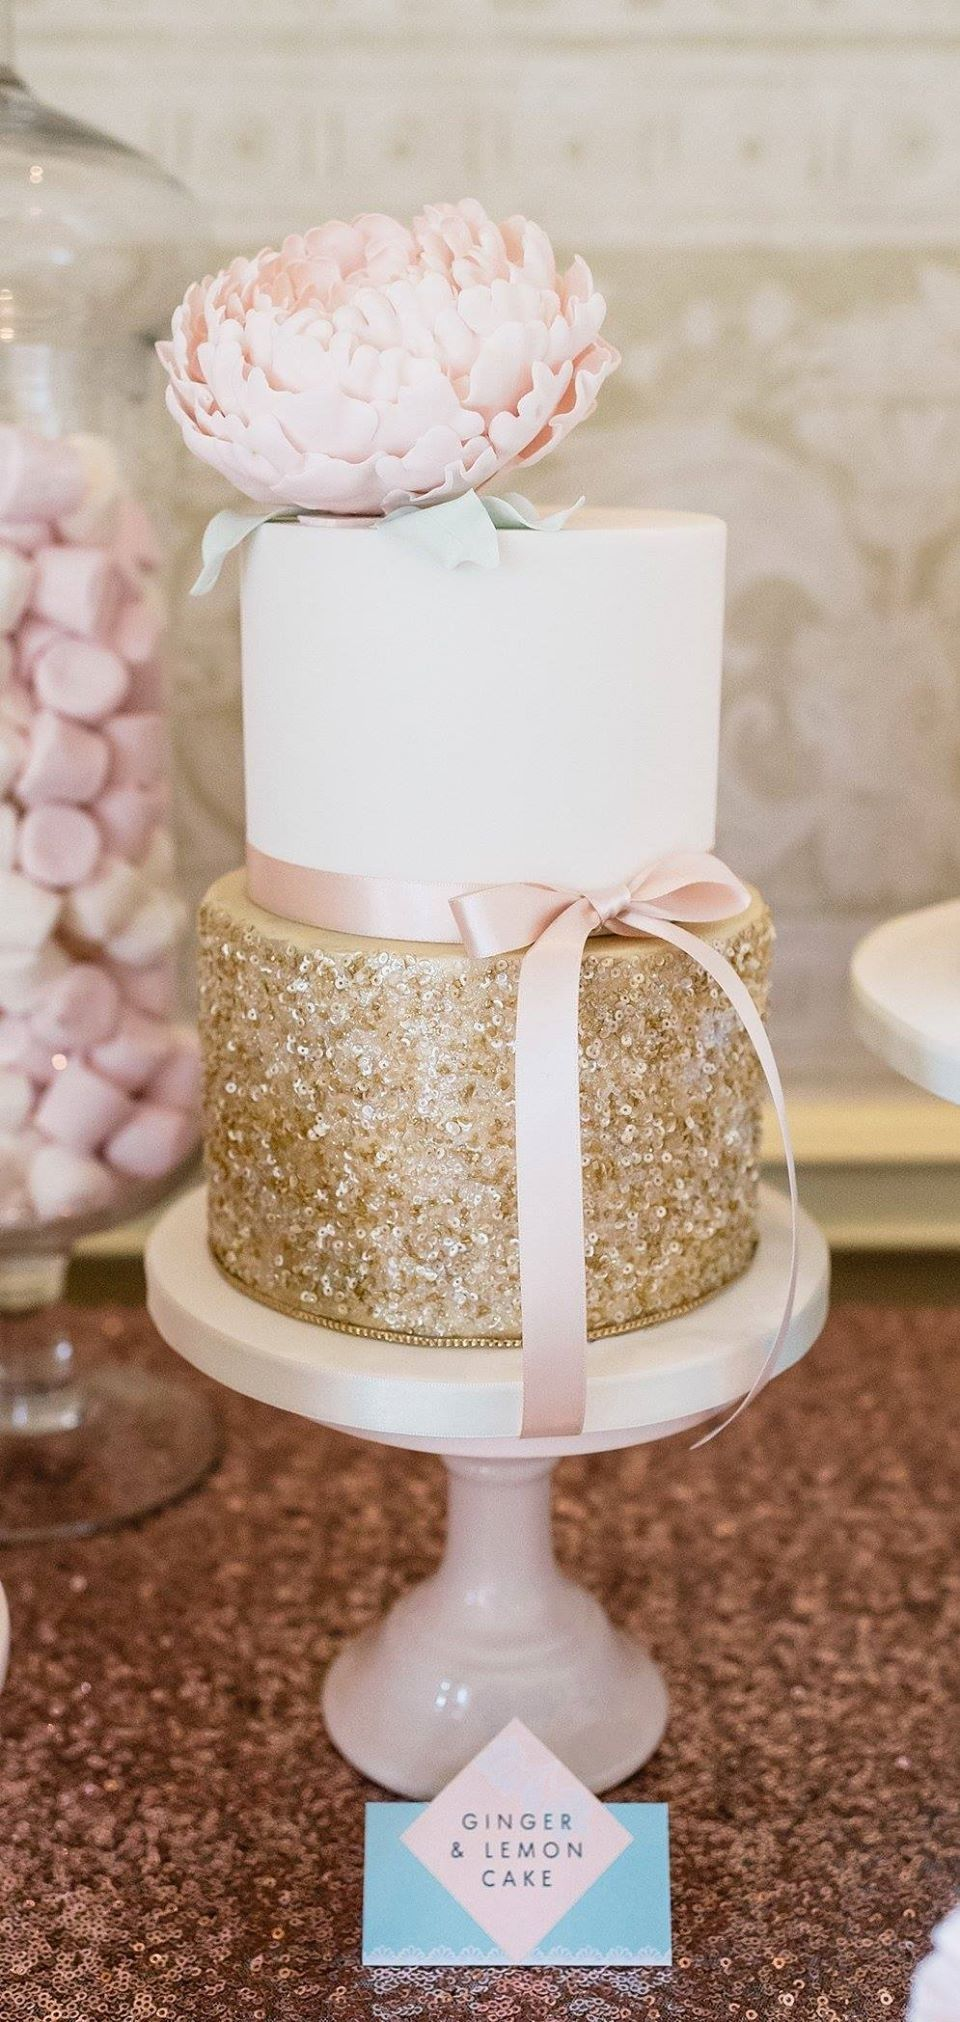 LOVE this totally adorable cake... So sparkly, so fairly, so perfect for my daughter's 1st birthday!